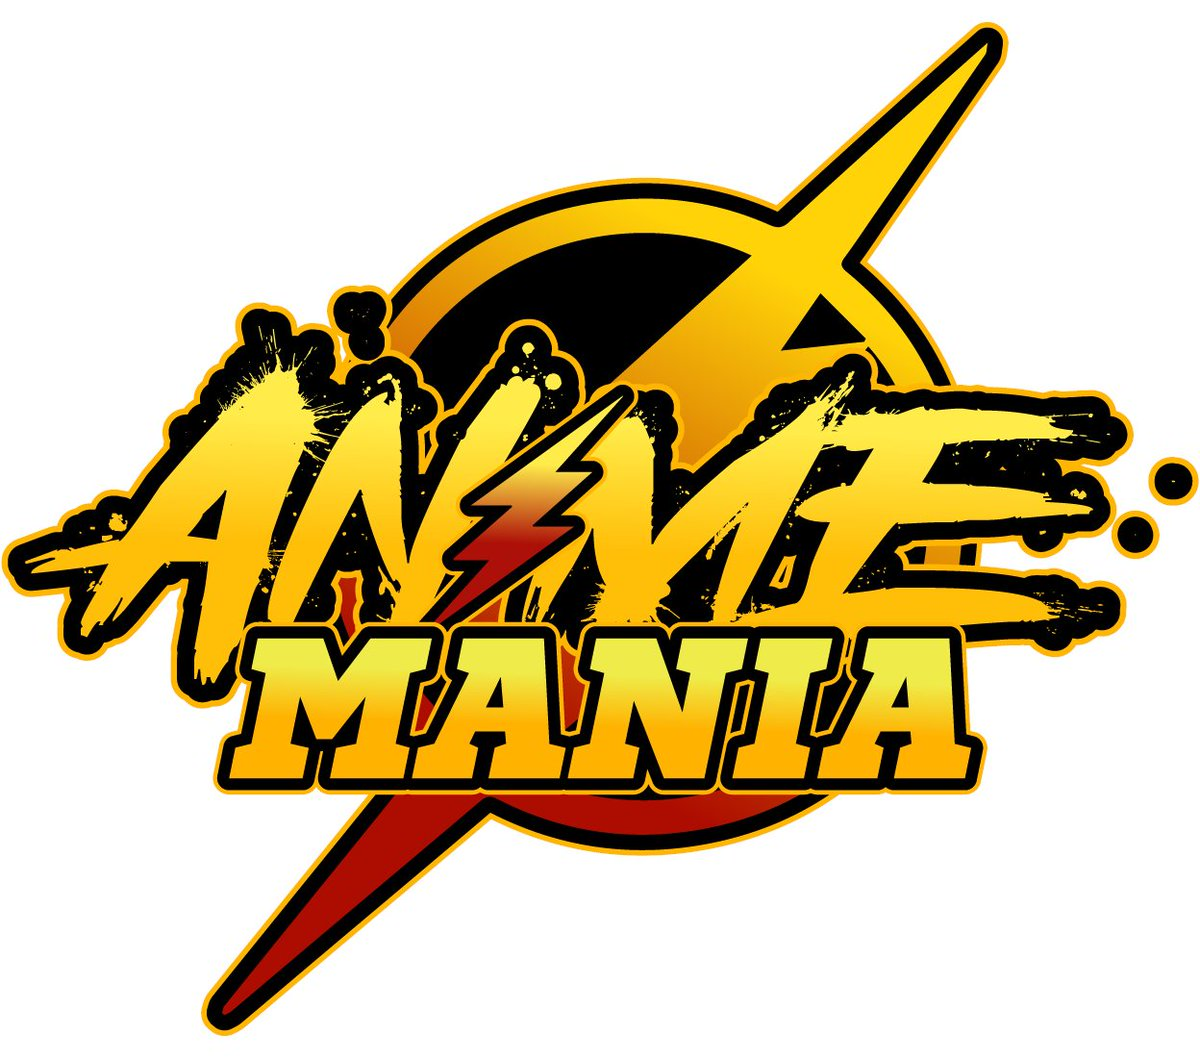 """Yakrus on Twitter: """"Working on a new project, """"Anime Mania"""" w/ @i_yurza  special thanks to @LoganKaitlynkz for the awesome logo!… """""""